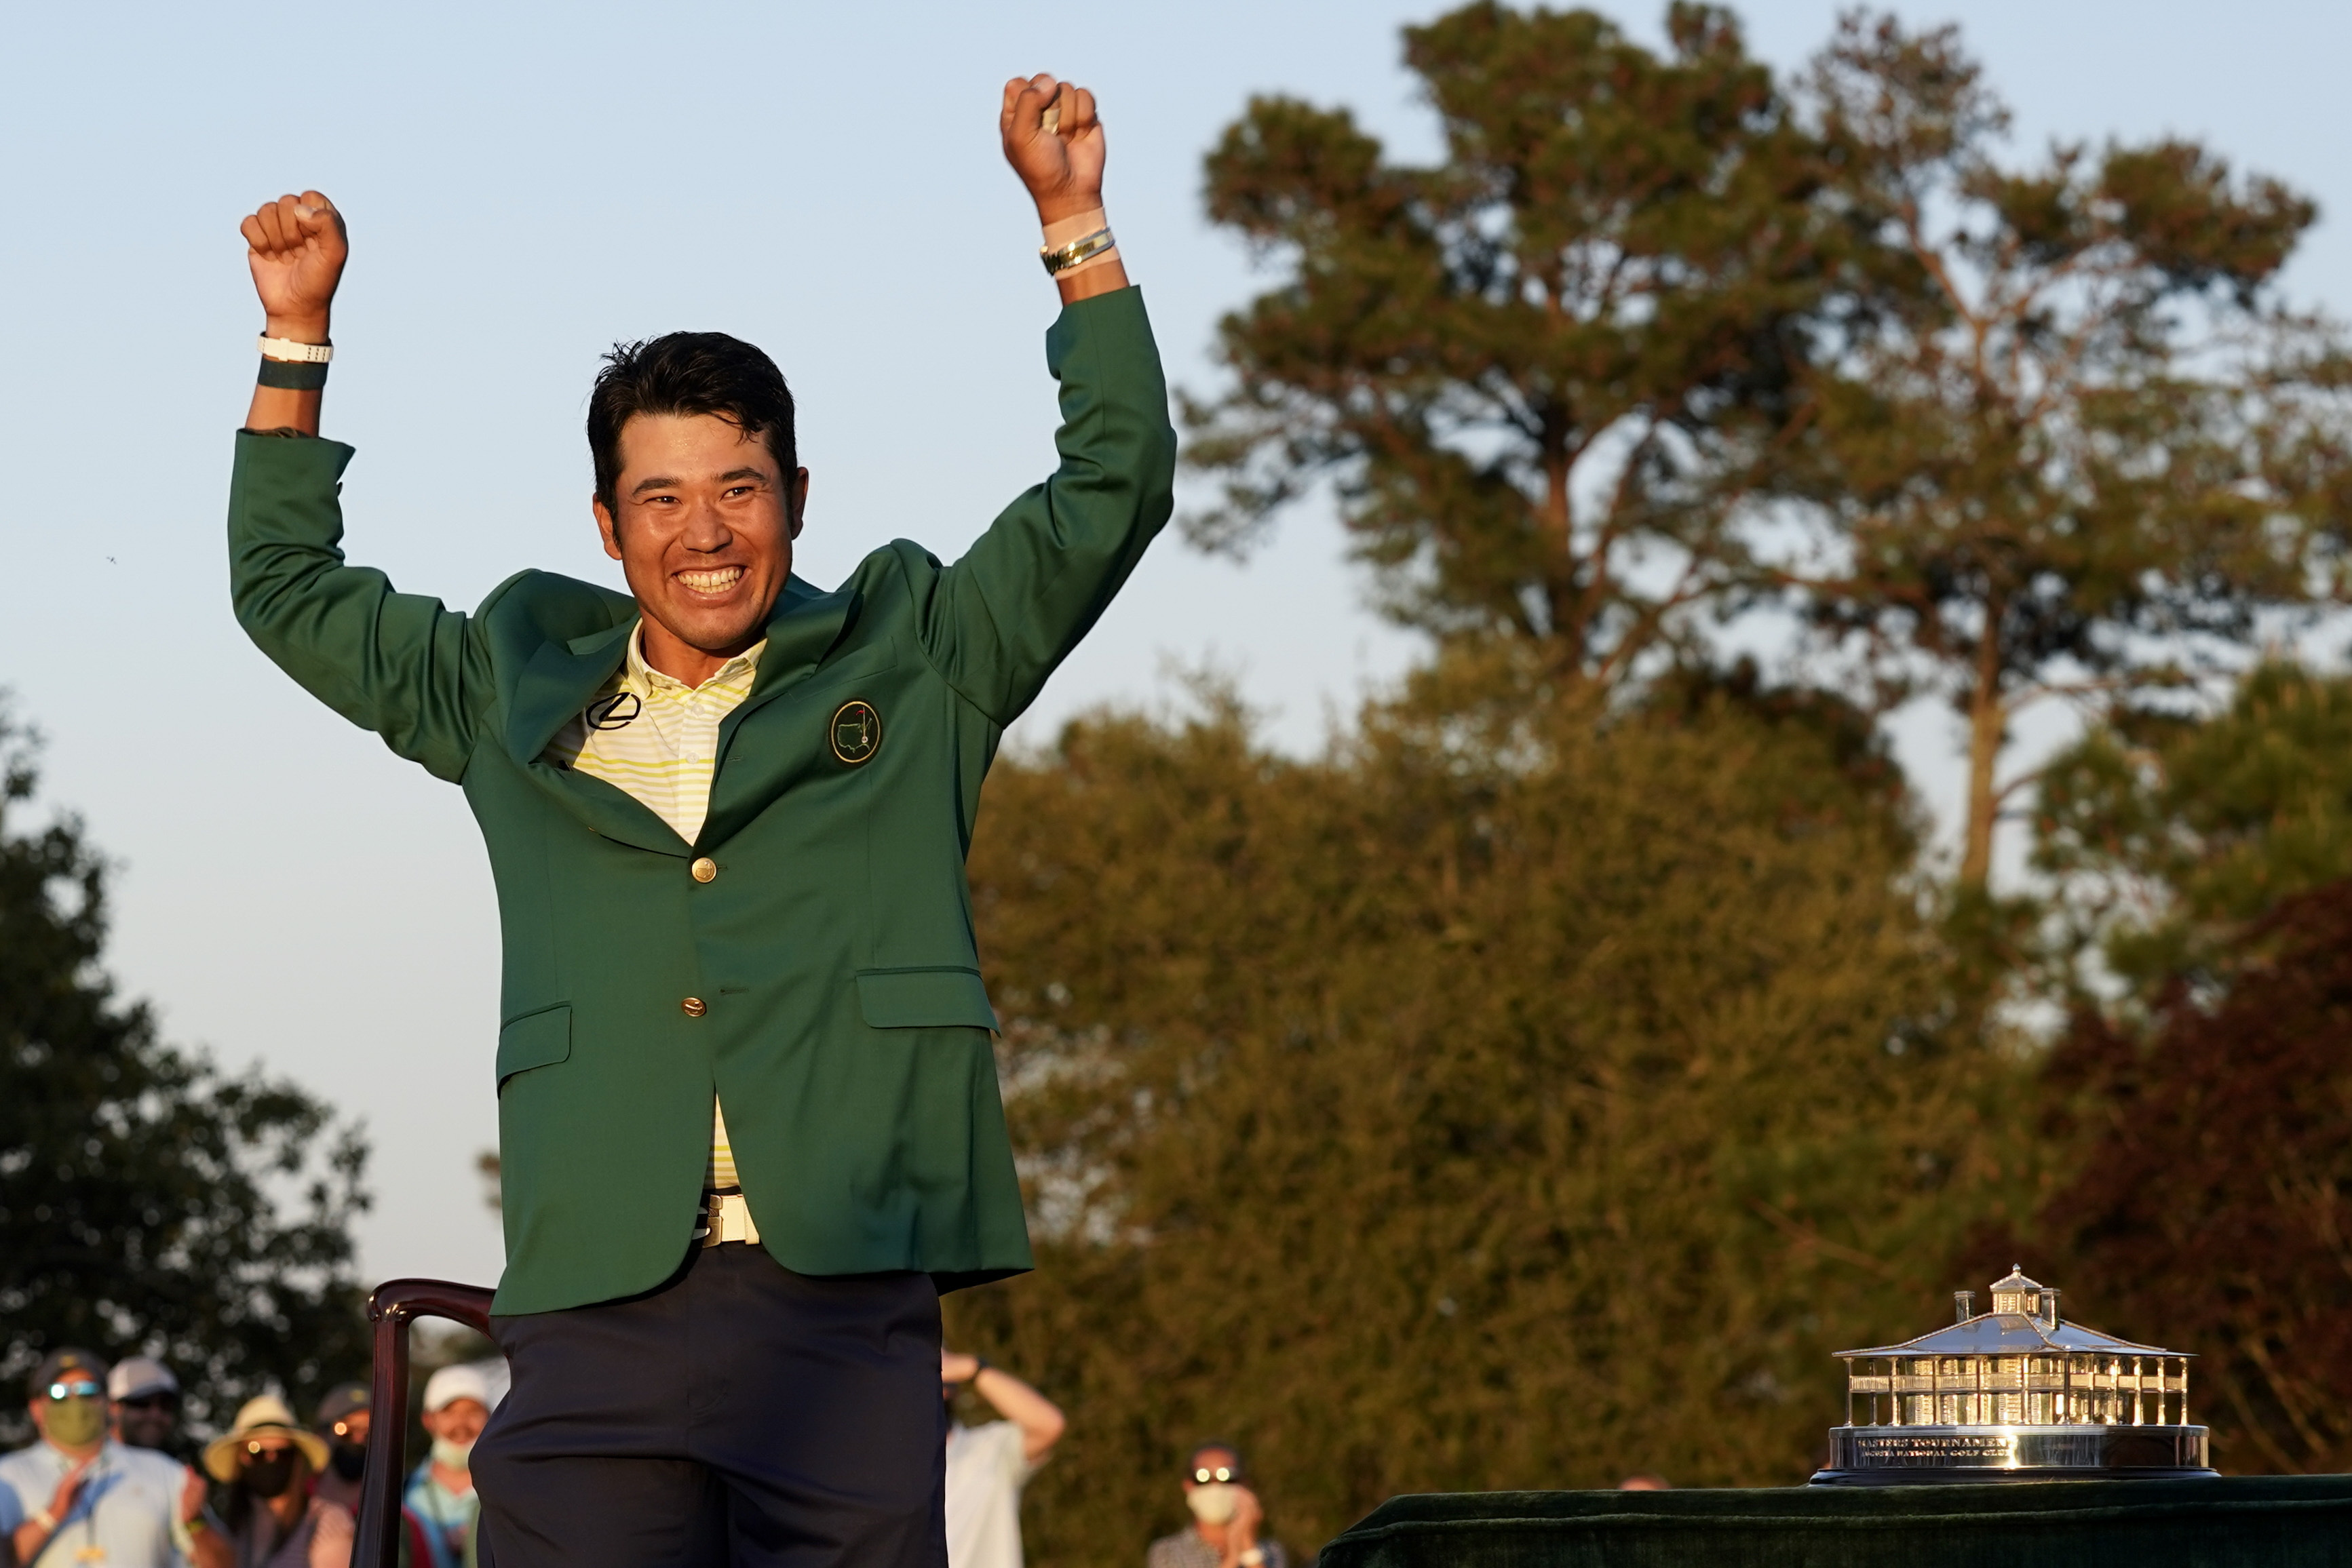 Hideki Matsuyama Photographed in Airport with Green Jacket After Masters Win – Bleacher Report